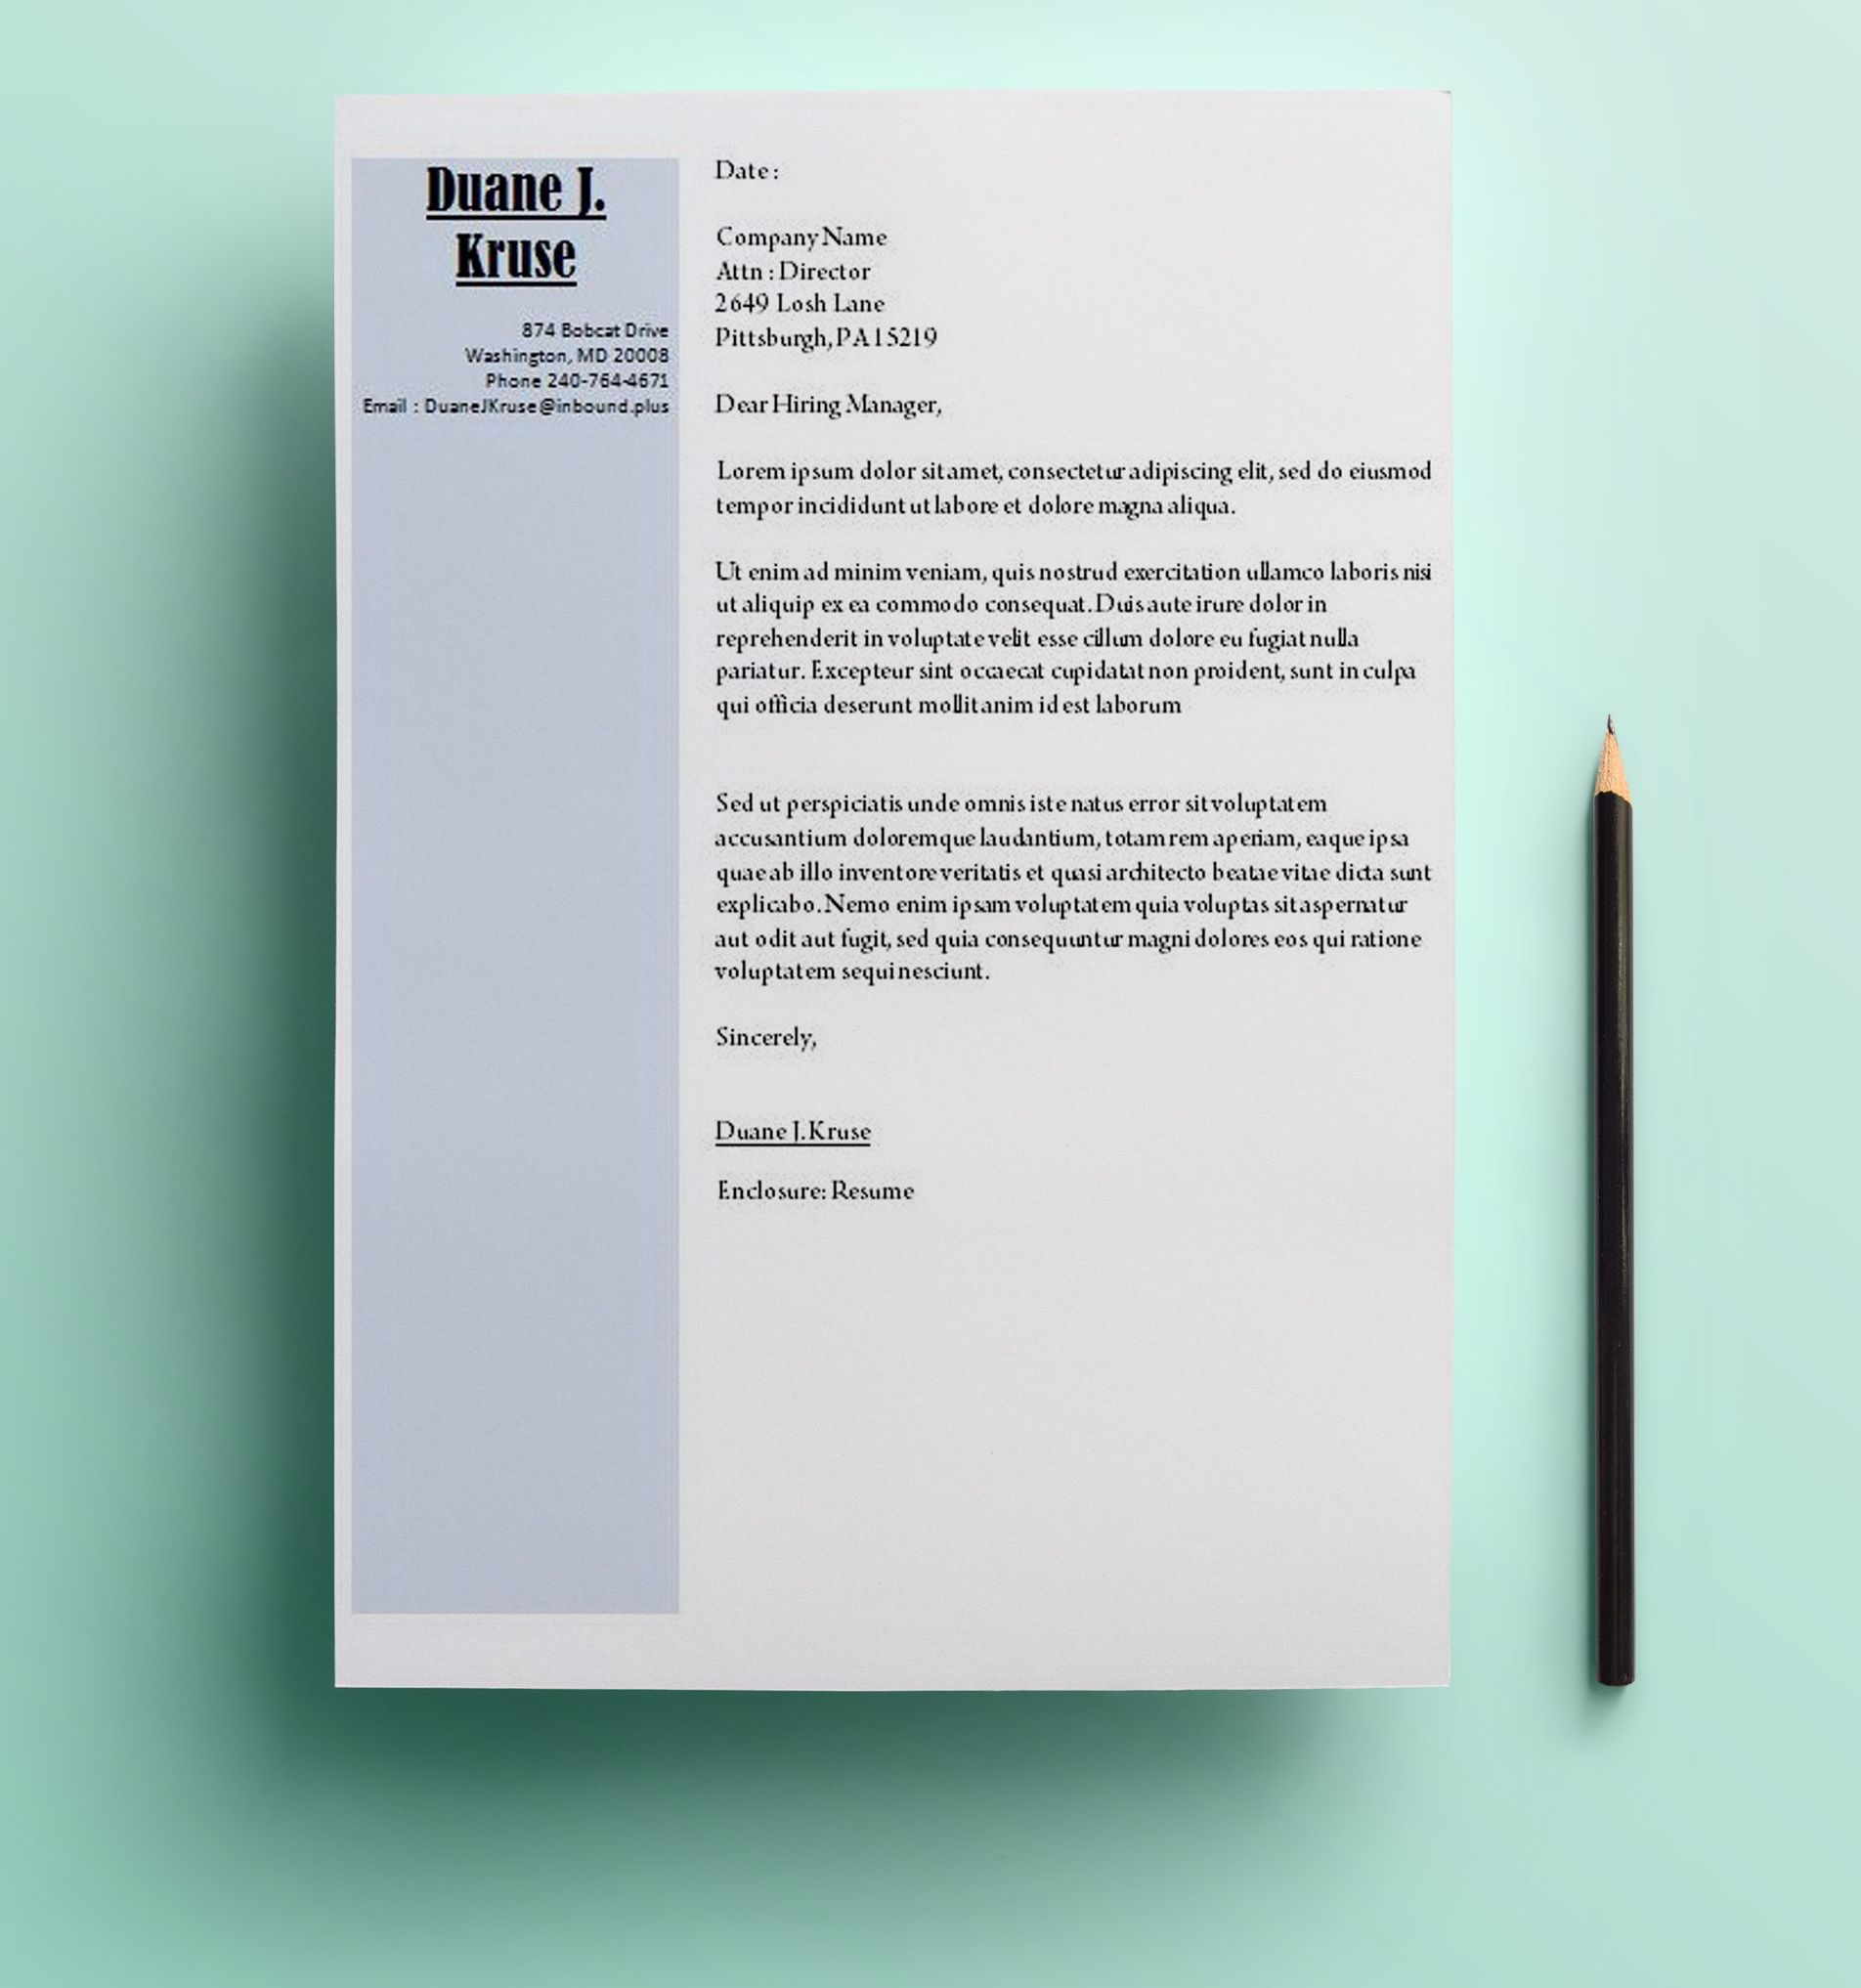 Unique Cover Letters Unique Diagonal Cover Letter Template For Microsoft Word Https